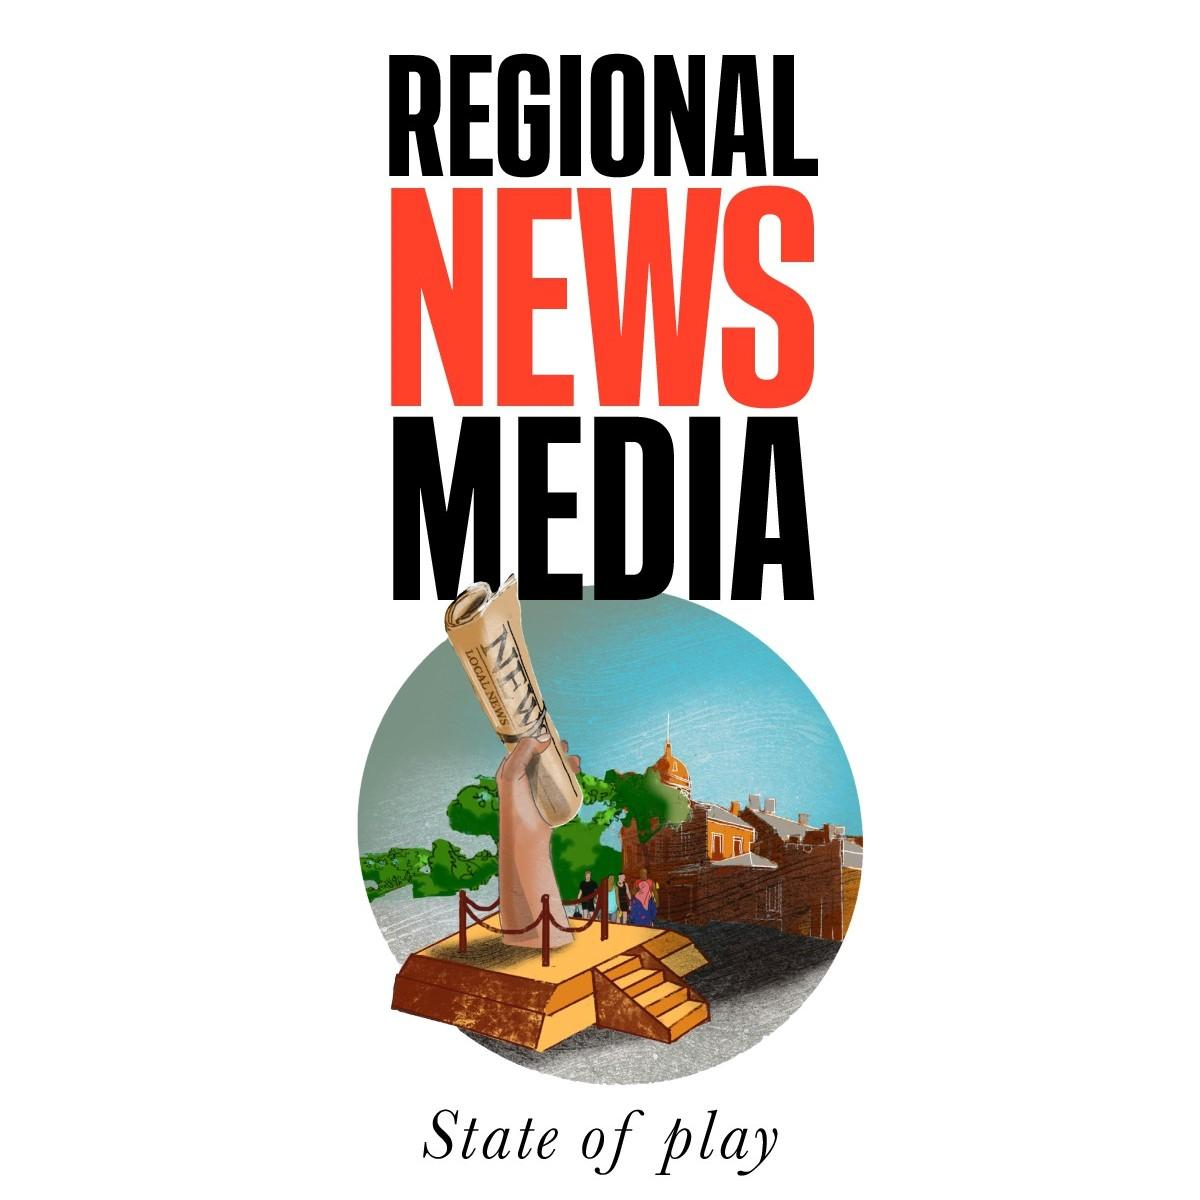 Regional News Media Research report cover